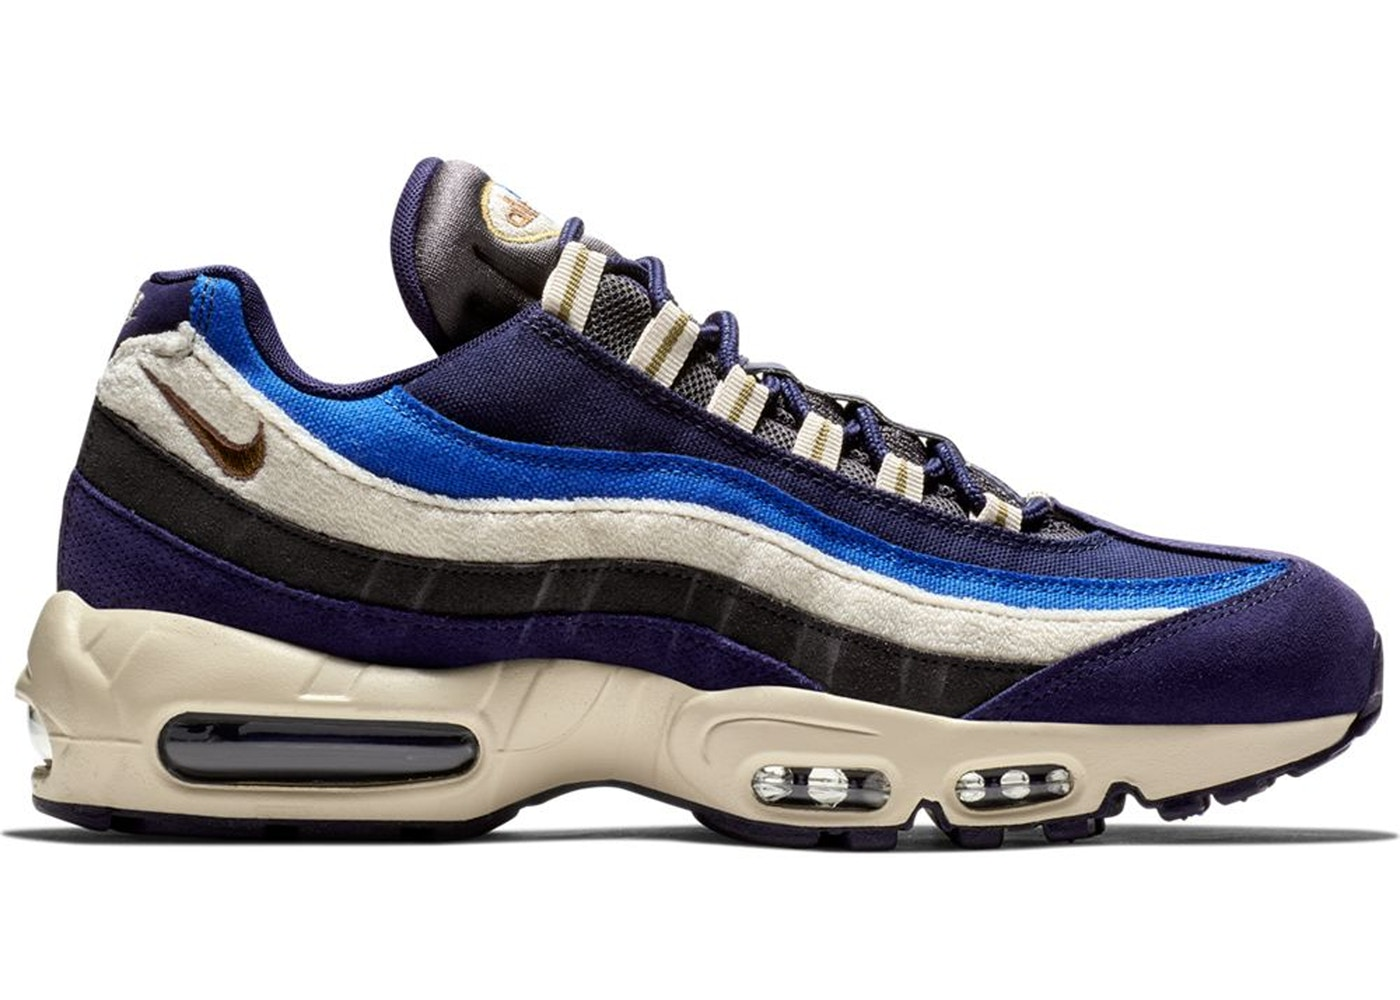 official photos a0e20 91985 Buy Nike Air Max 95 Shoes  Deadstock Sneakers